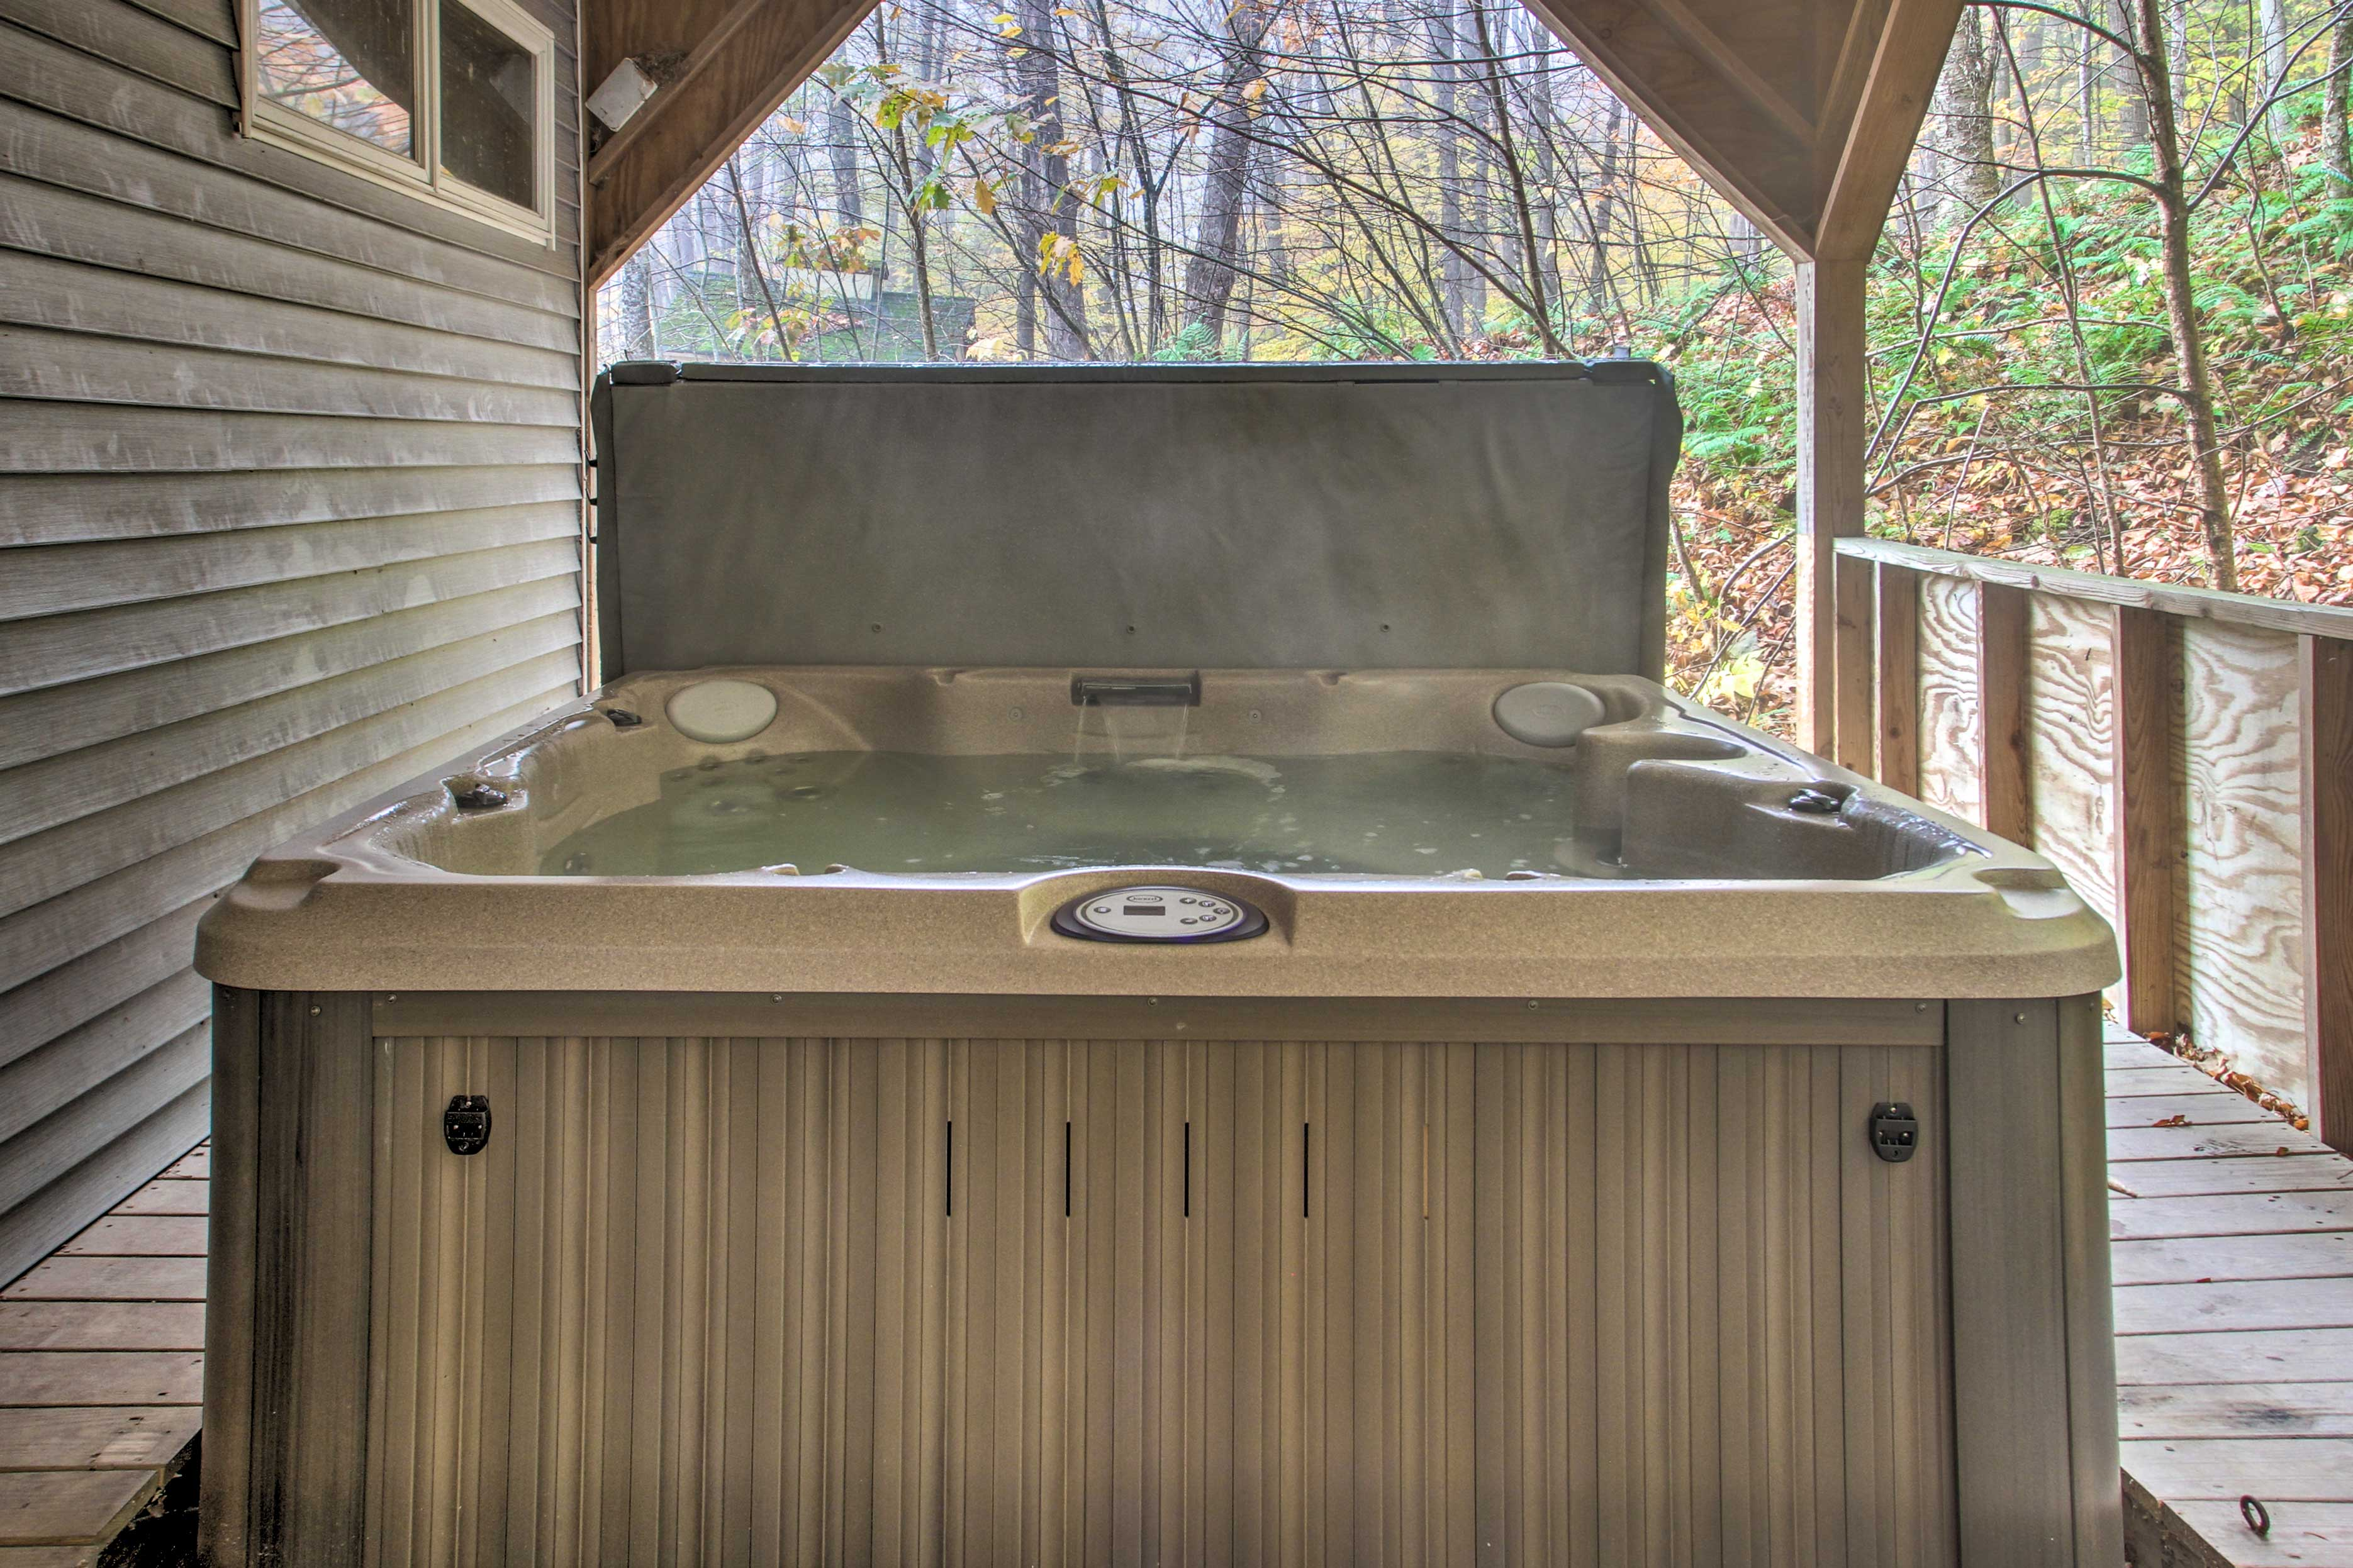 Step outside and go for a dip in the hot tub.